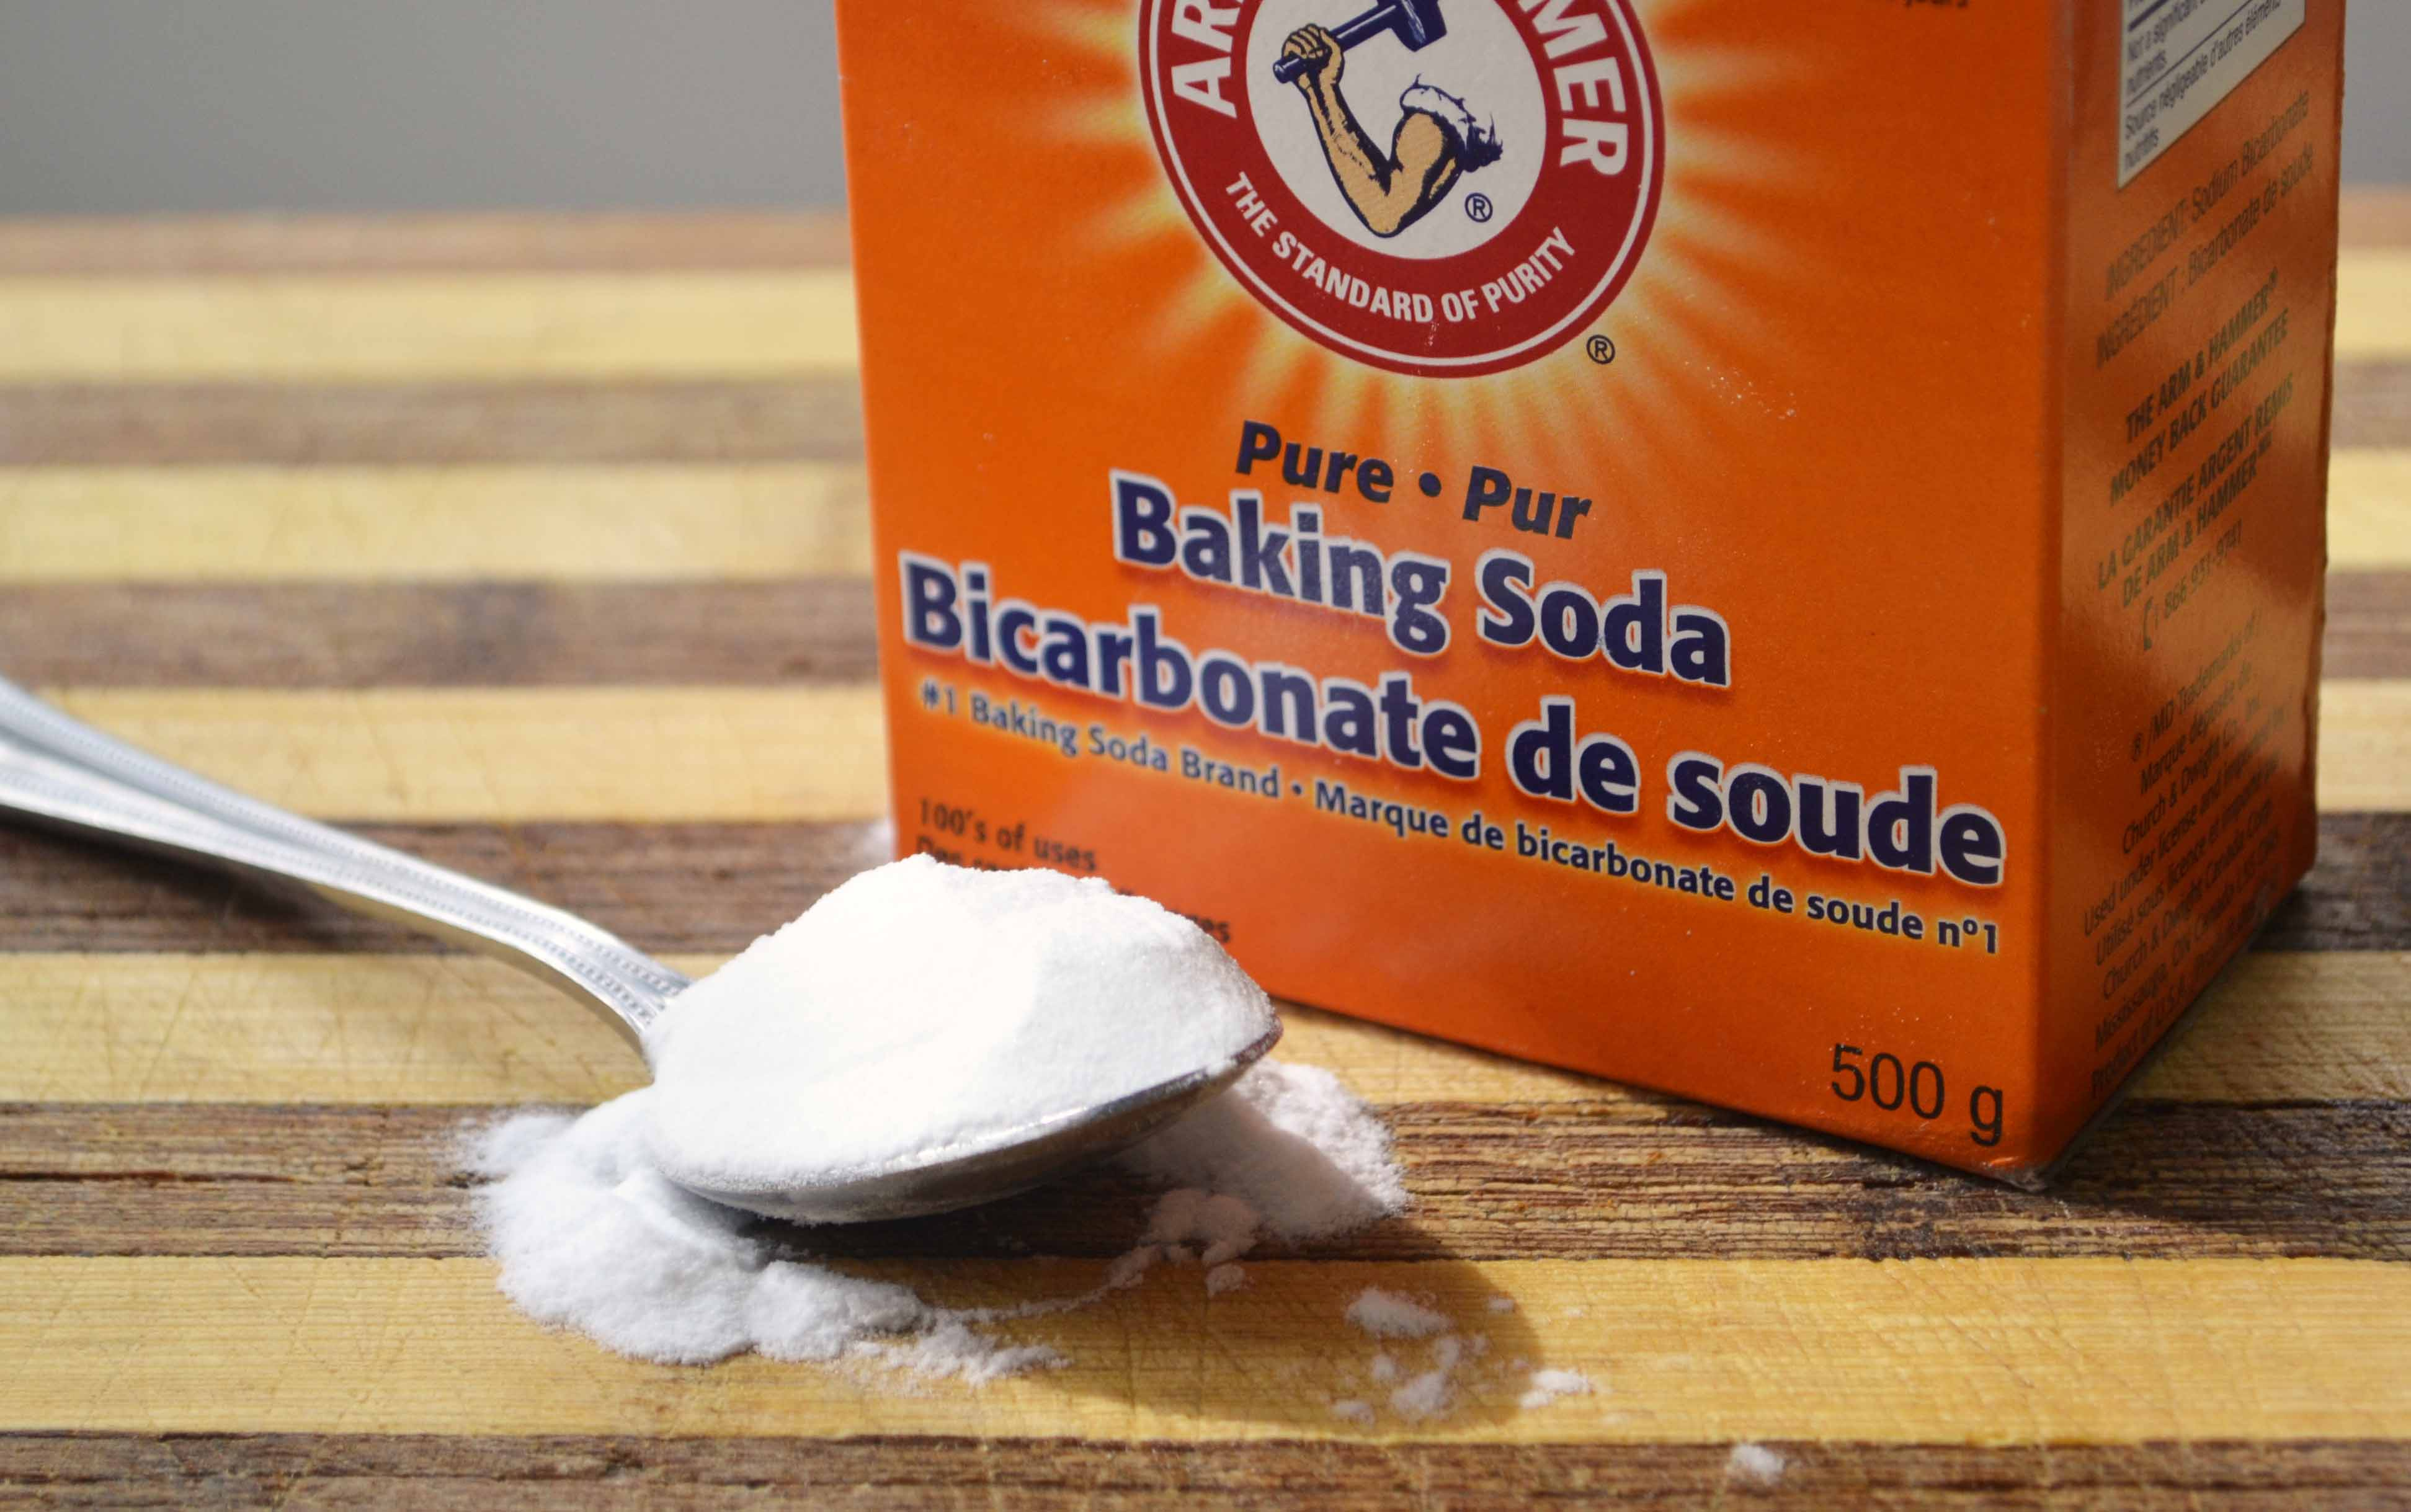 Variety of usage of baking soda